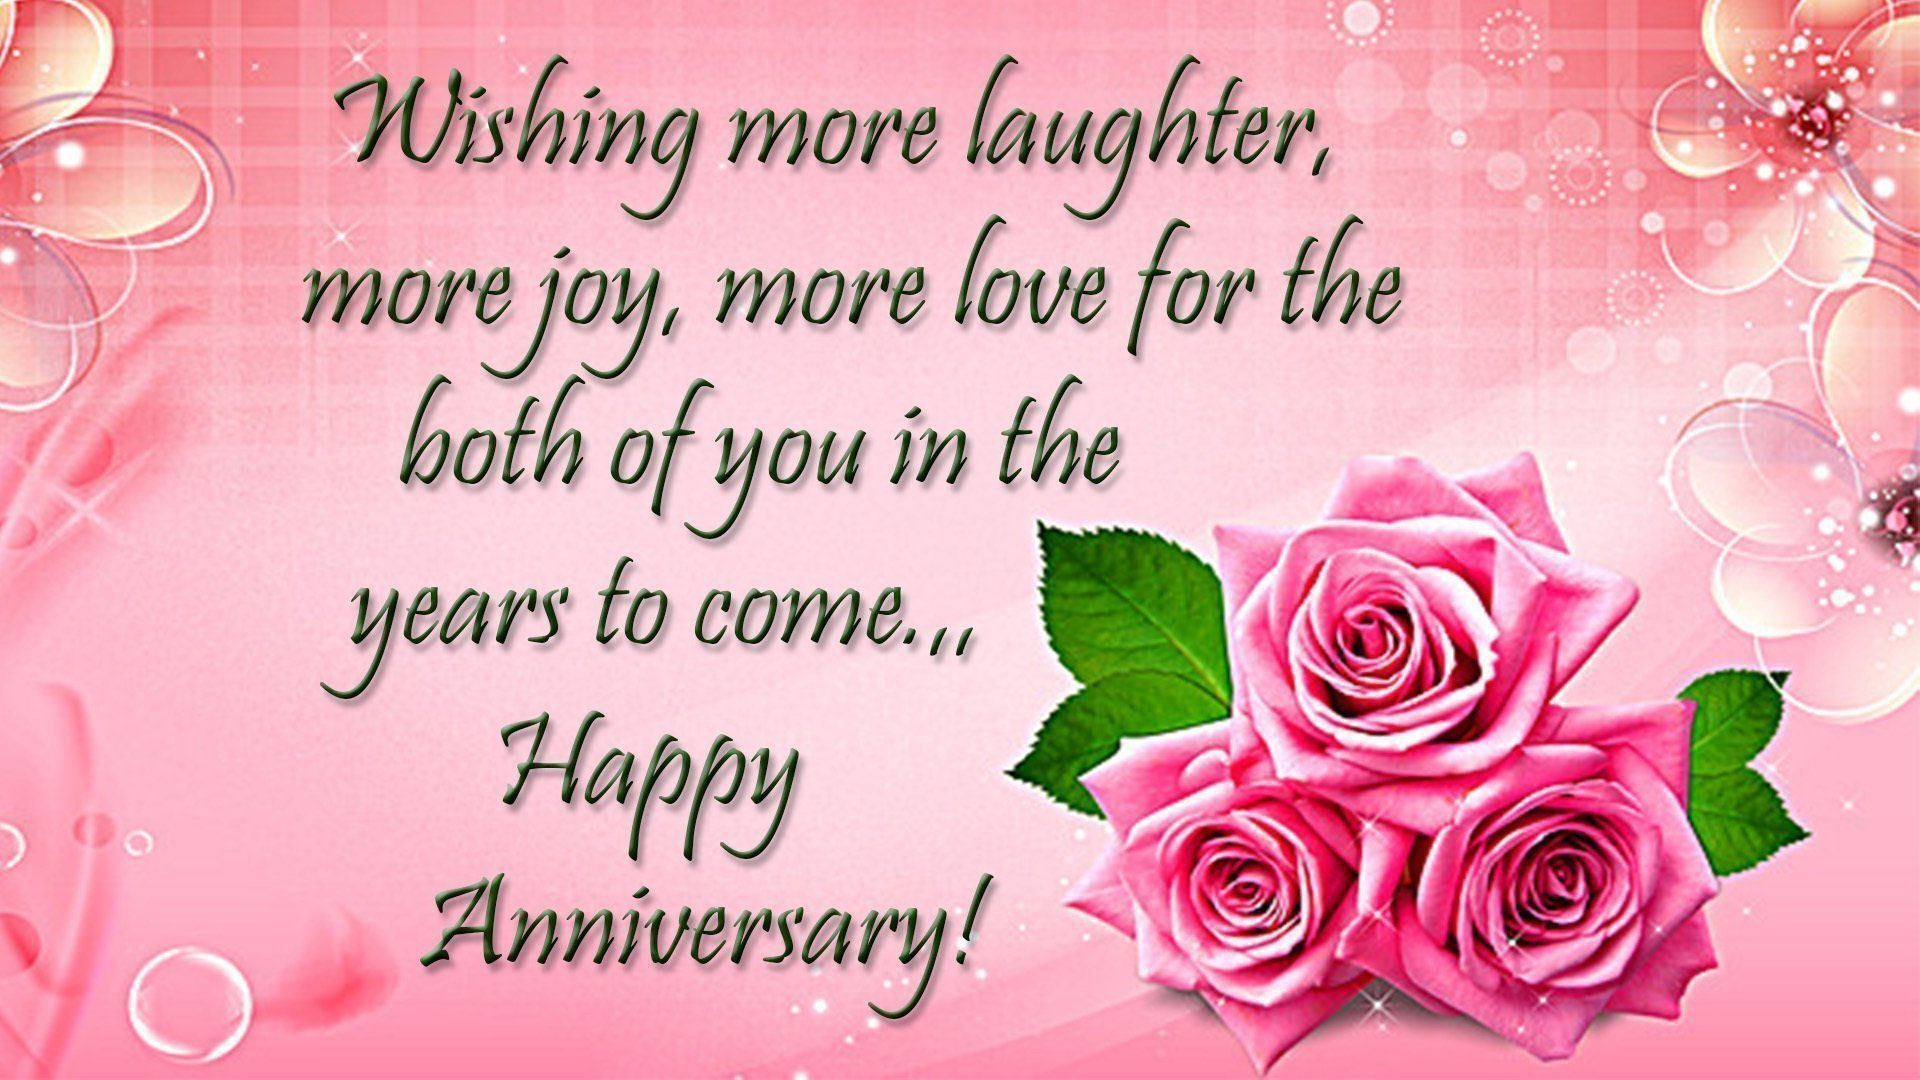 Wishes Happy Anniversary Both Of You And Lots Of Love You Wallpaper Anni In 2020 Happy Wedding Anniversary Wishes Happy Marriage Anniversary Wedding Anniversary Wishes